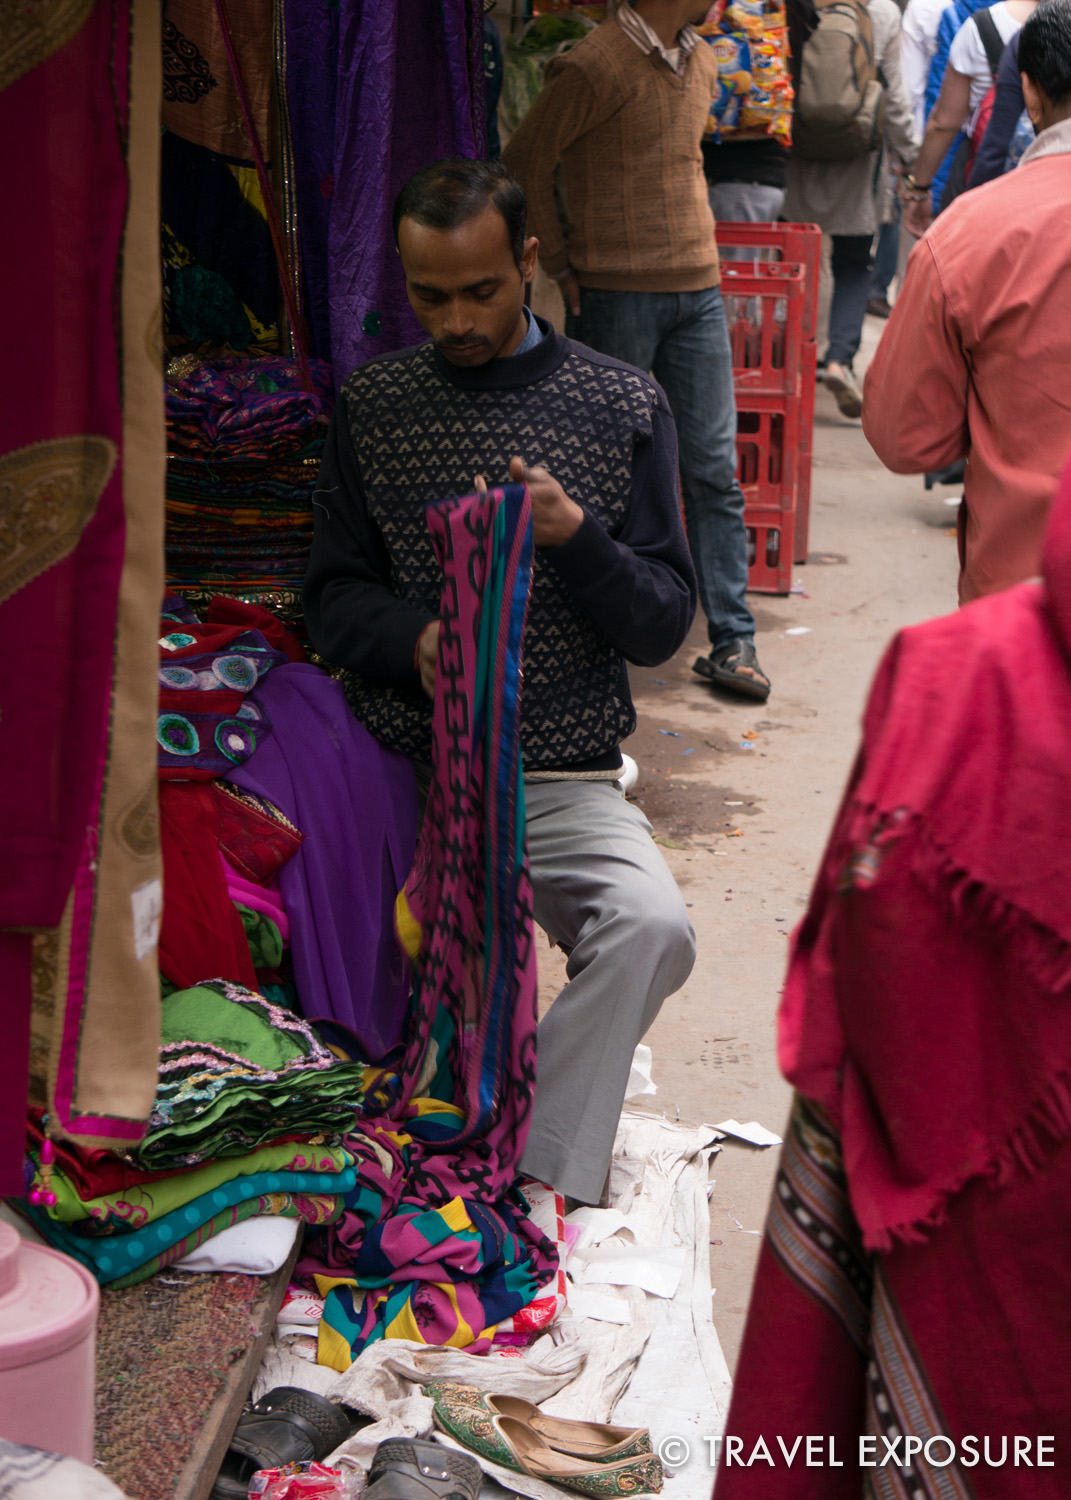 Walking around Old Delhi